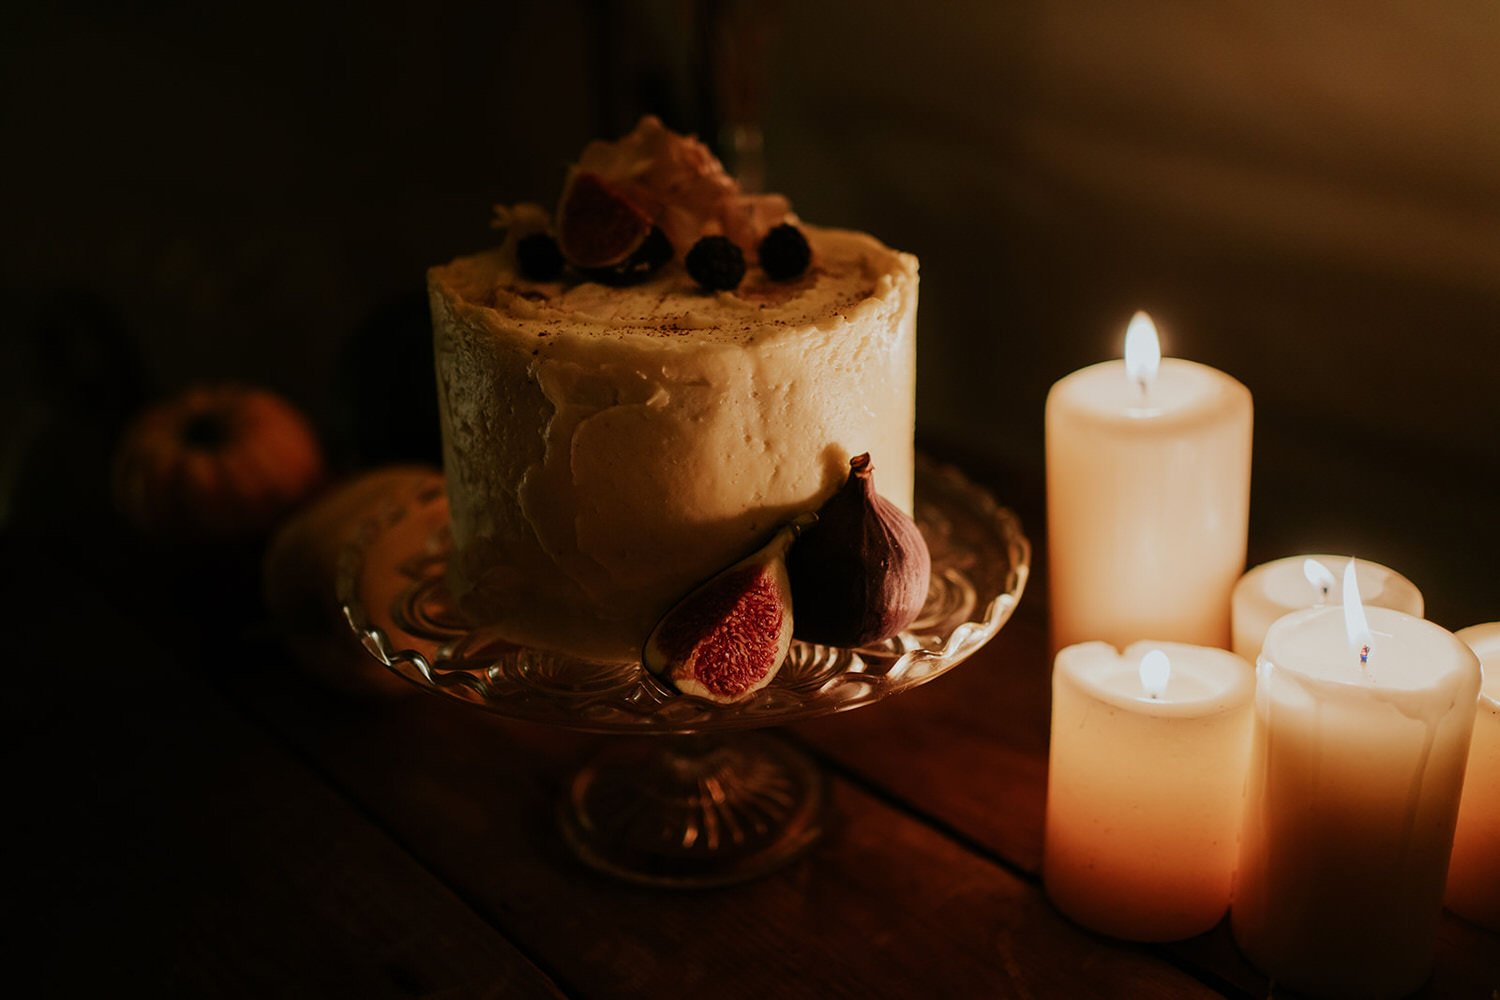 Elopement Cake with Candle Light - wedding food